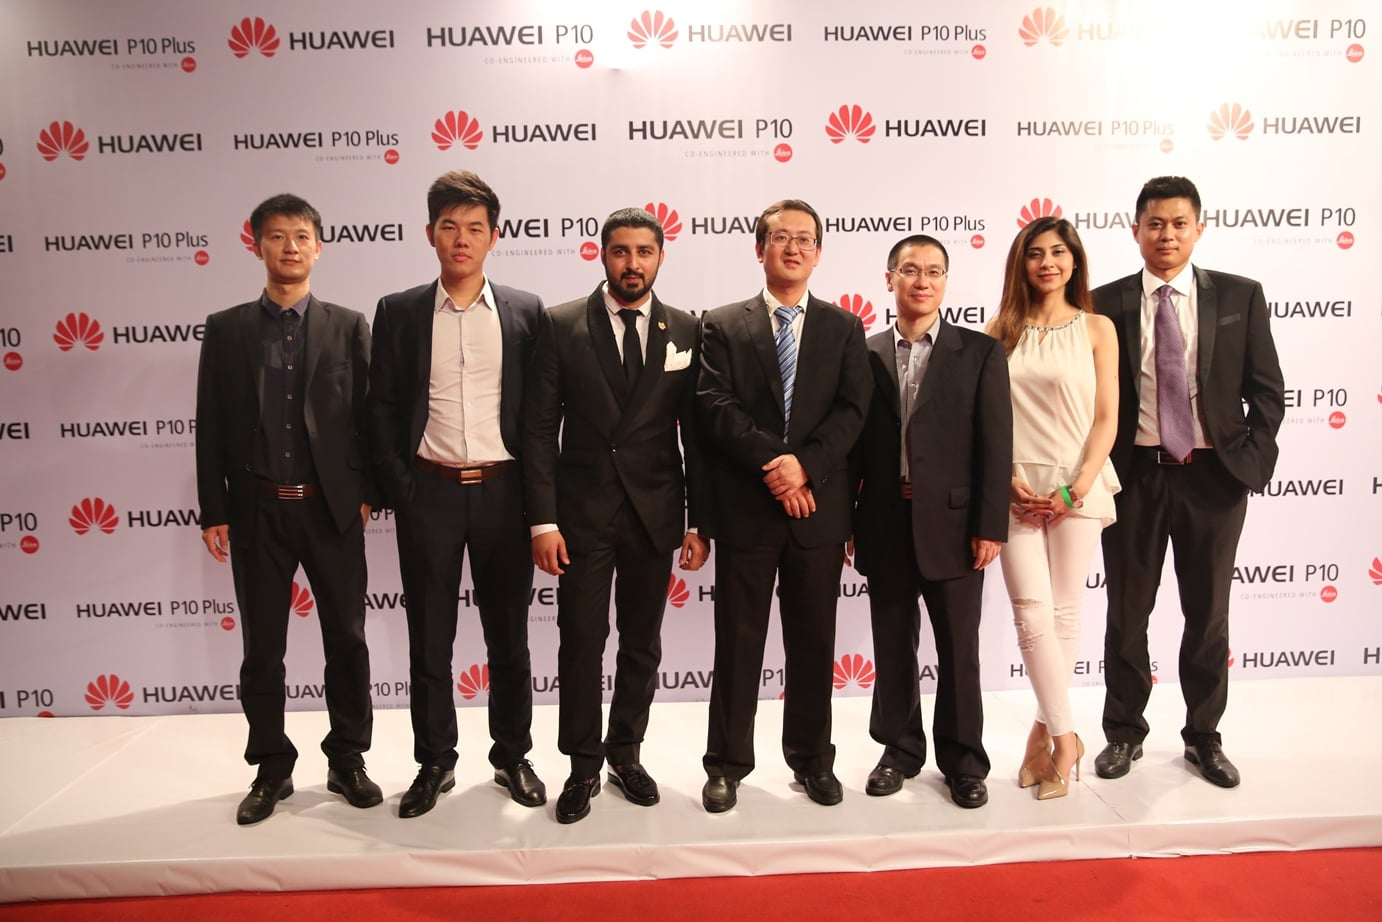 To kick off the launch of its flagship devices P10 and P10 Plus, Huawei Pakistan hosted an exclusive event in Karachi. The event was attended by the